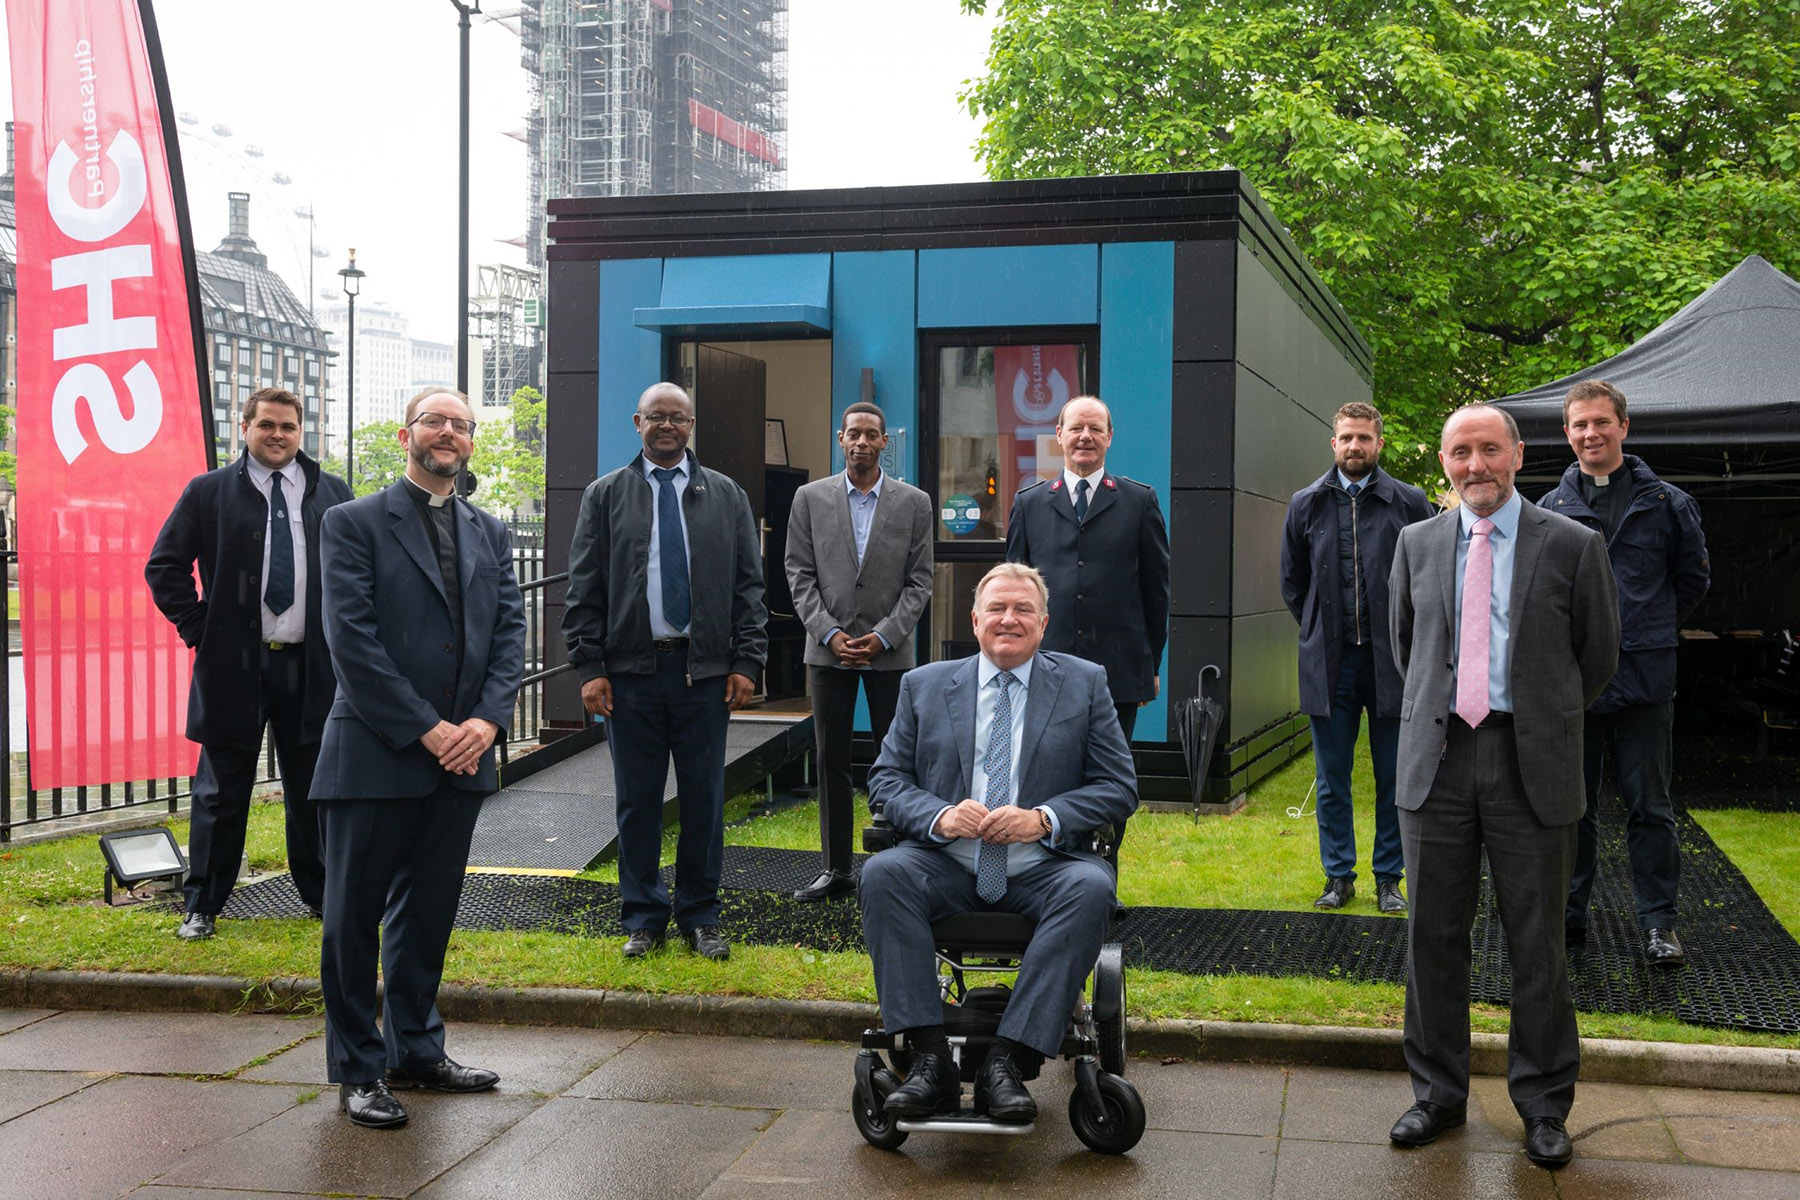 New partnership launches to tackle homelessness with call for Government support